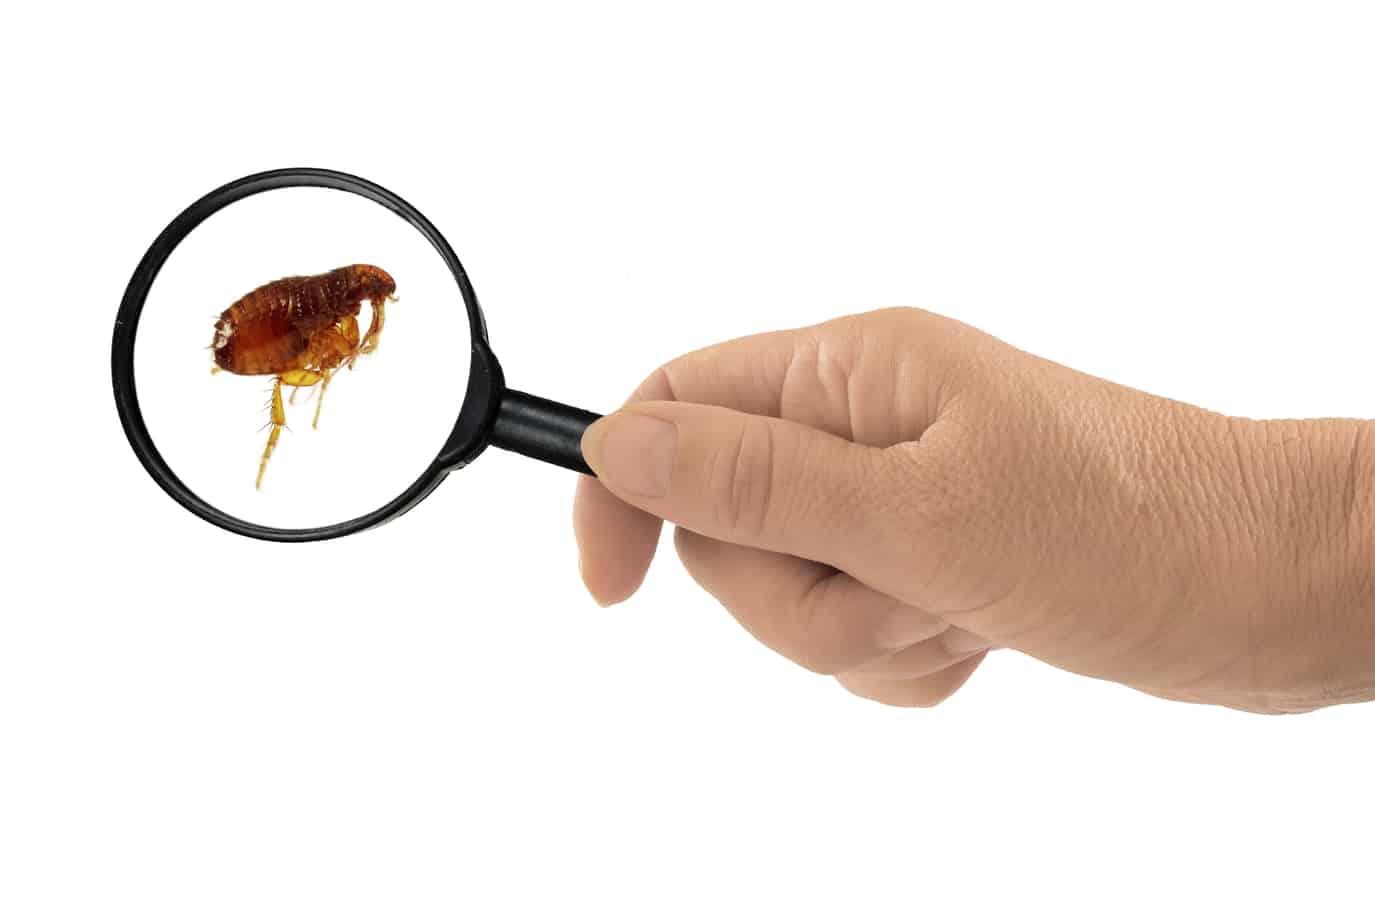 Flea Extermination Options for Your Home